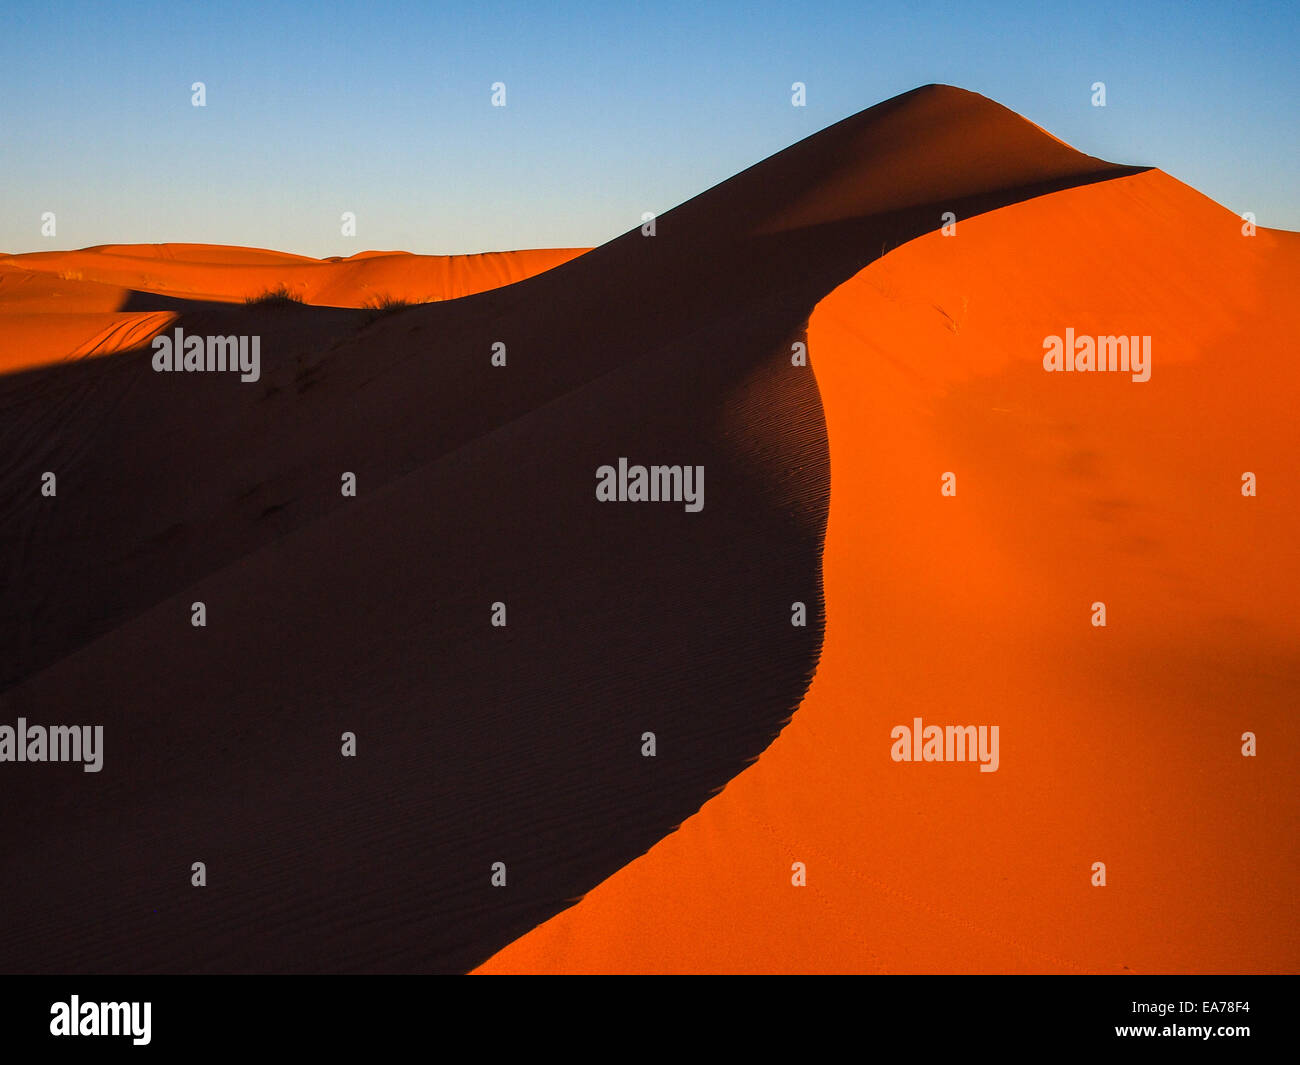 Sand dunes of Erg Chebbi in the Sahara Desert, Morocco. - Stock Image